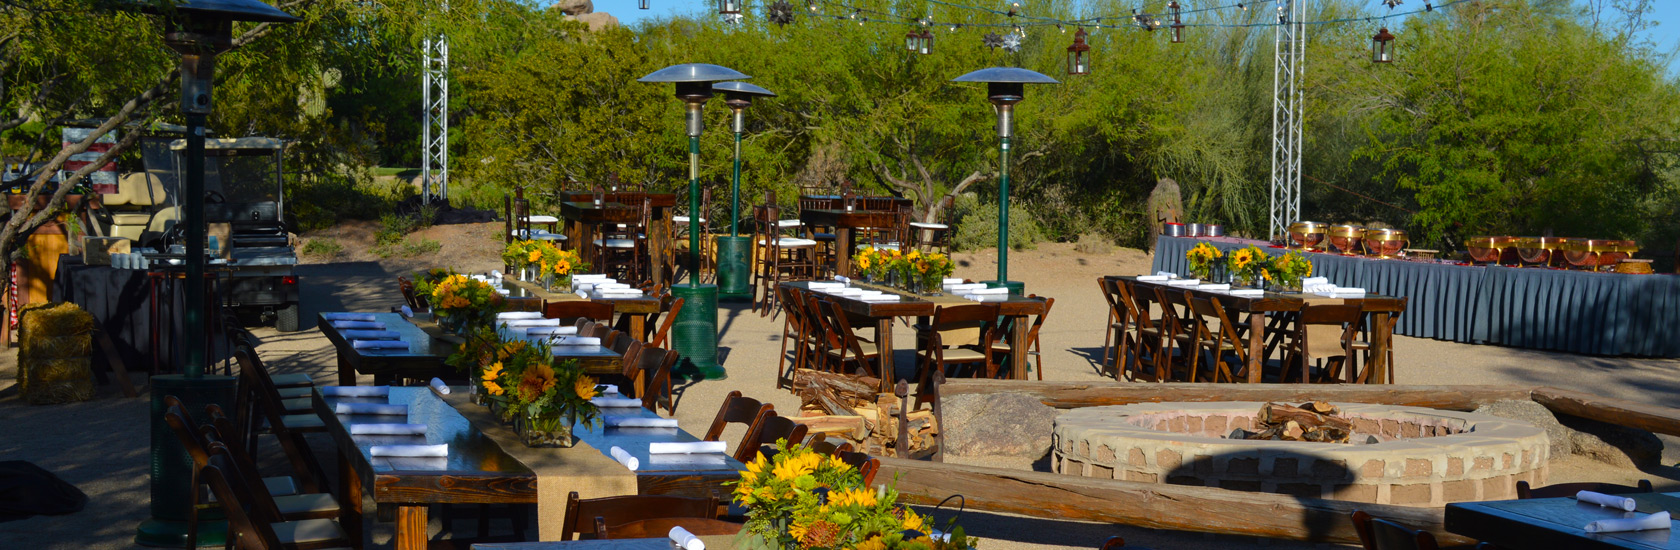 Corporate events - outside dining